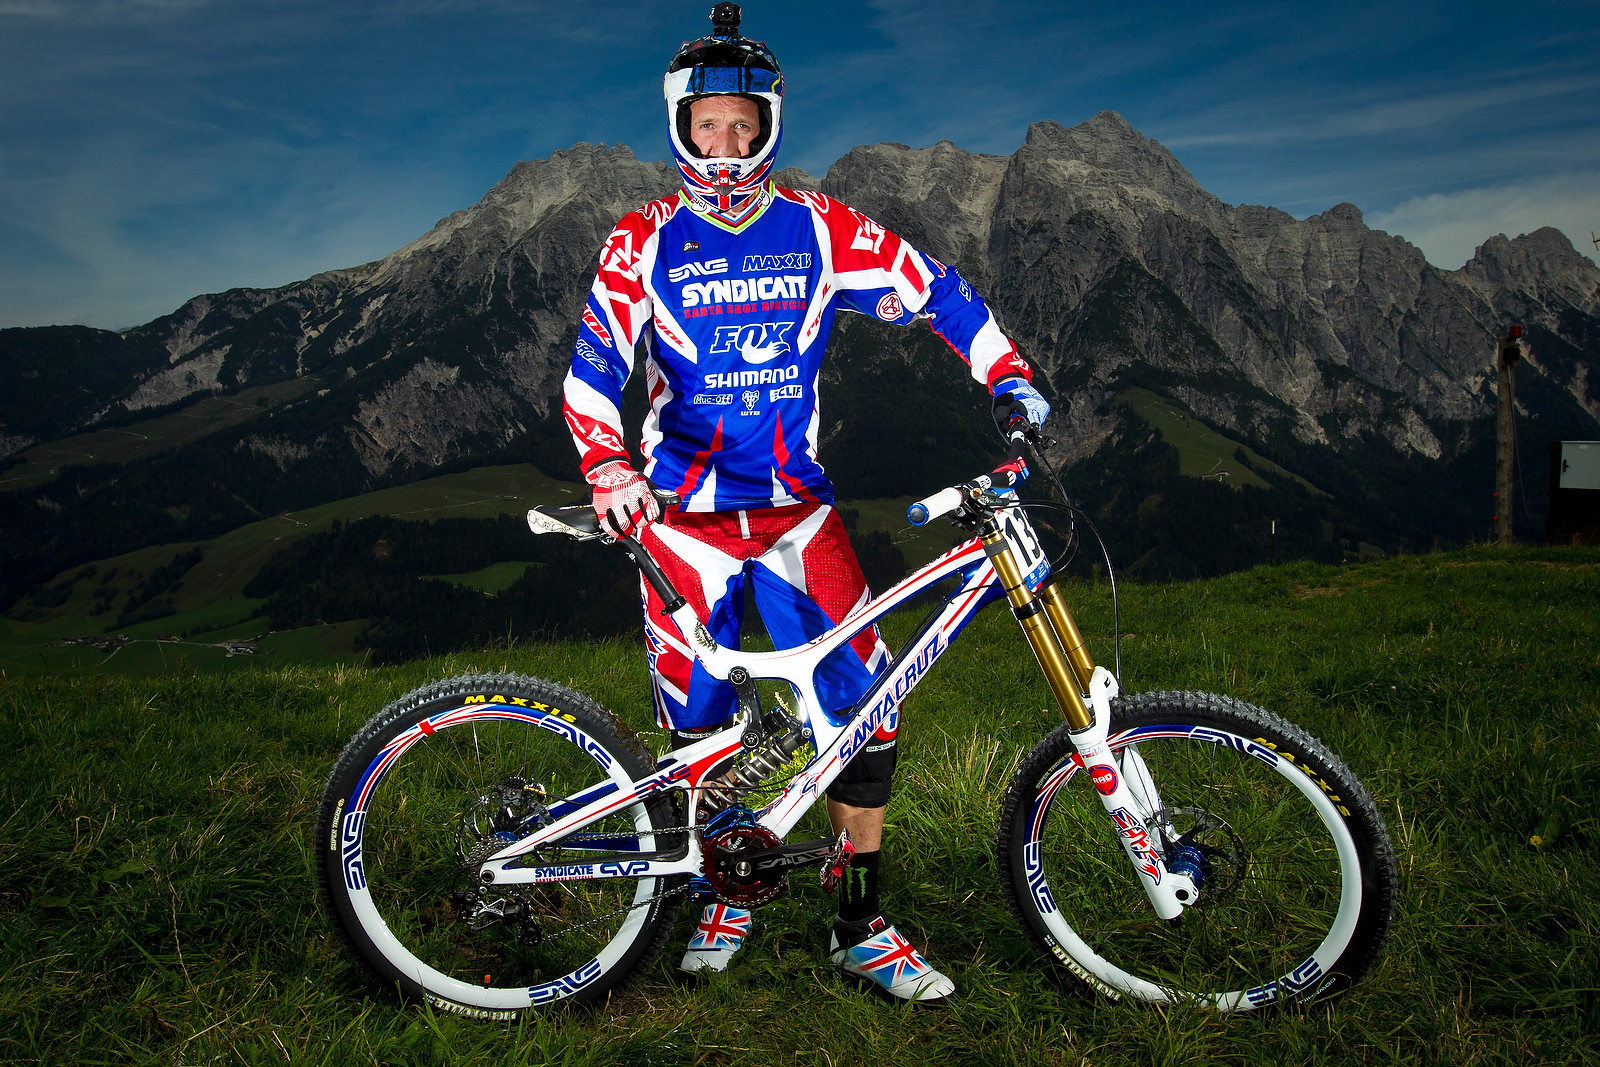 Steve Peat with his Custom Santa Cruz V10c - World Championships Riders and Bikes - Mountain Biking Pictures - Vital MTB